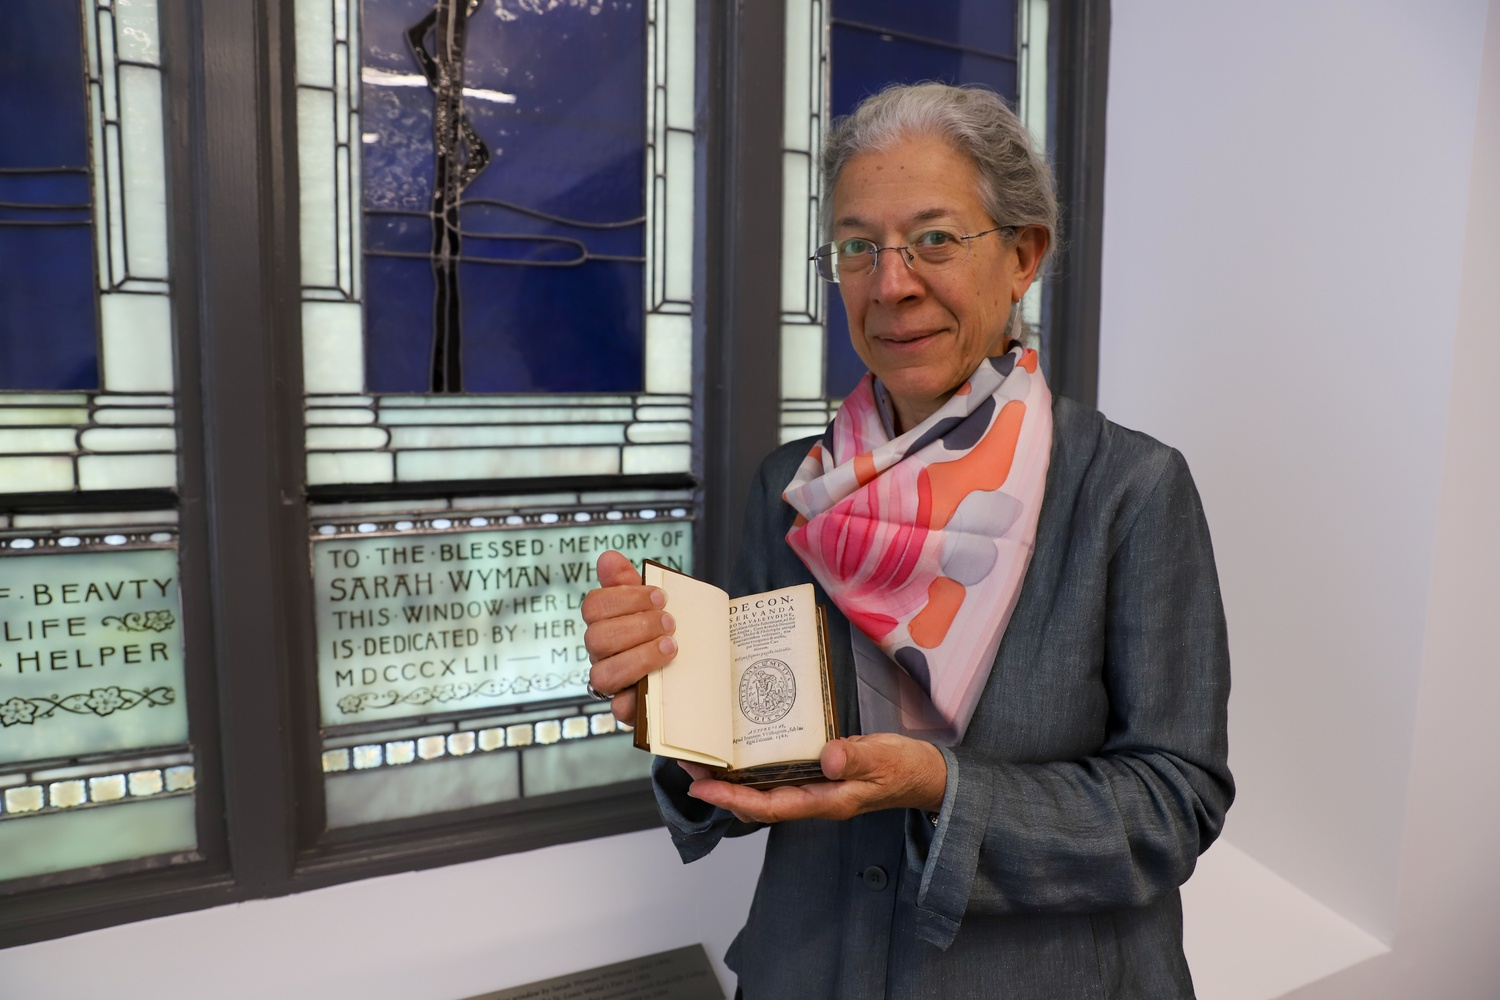 Marlyène Altieri is the curator of Books and Printed Materials at The Schlesigner Library on the History of Women in America, including its culinary collection, which makes up about 20 percent of the library's volumes.